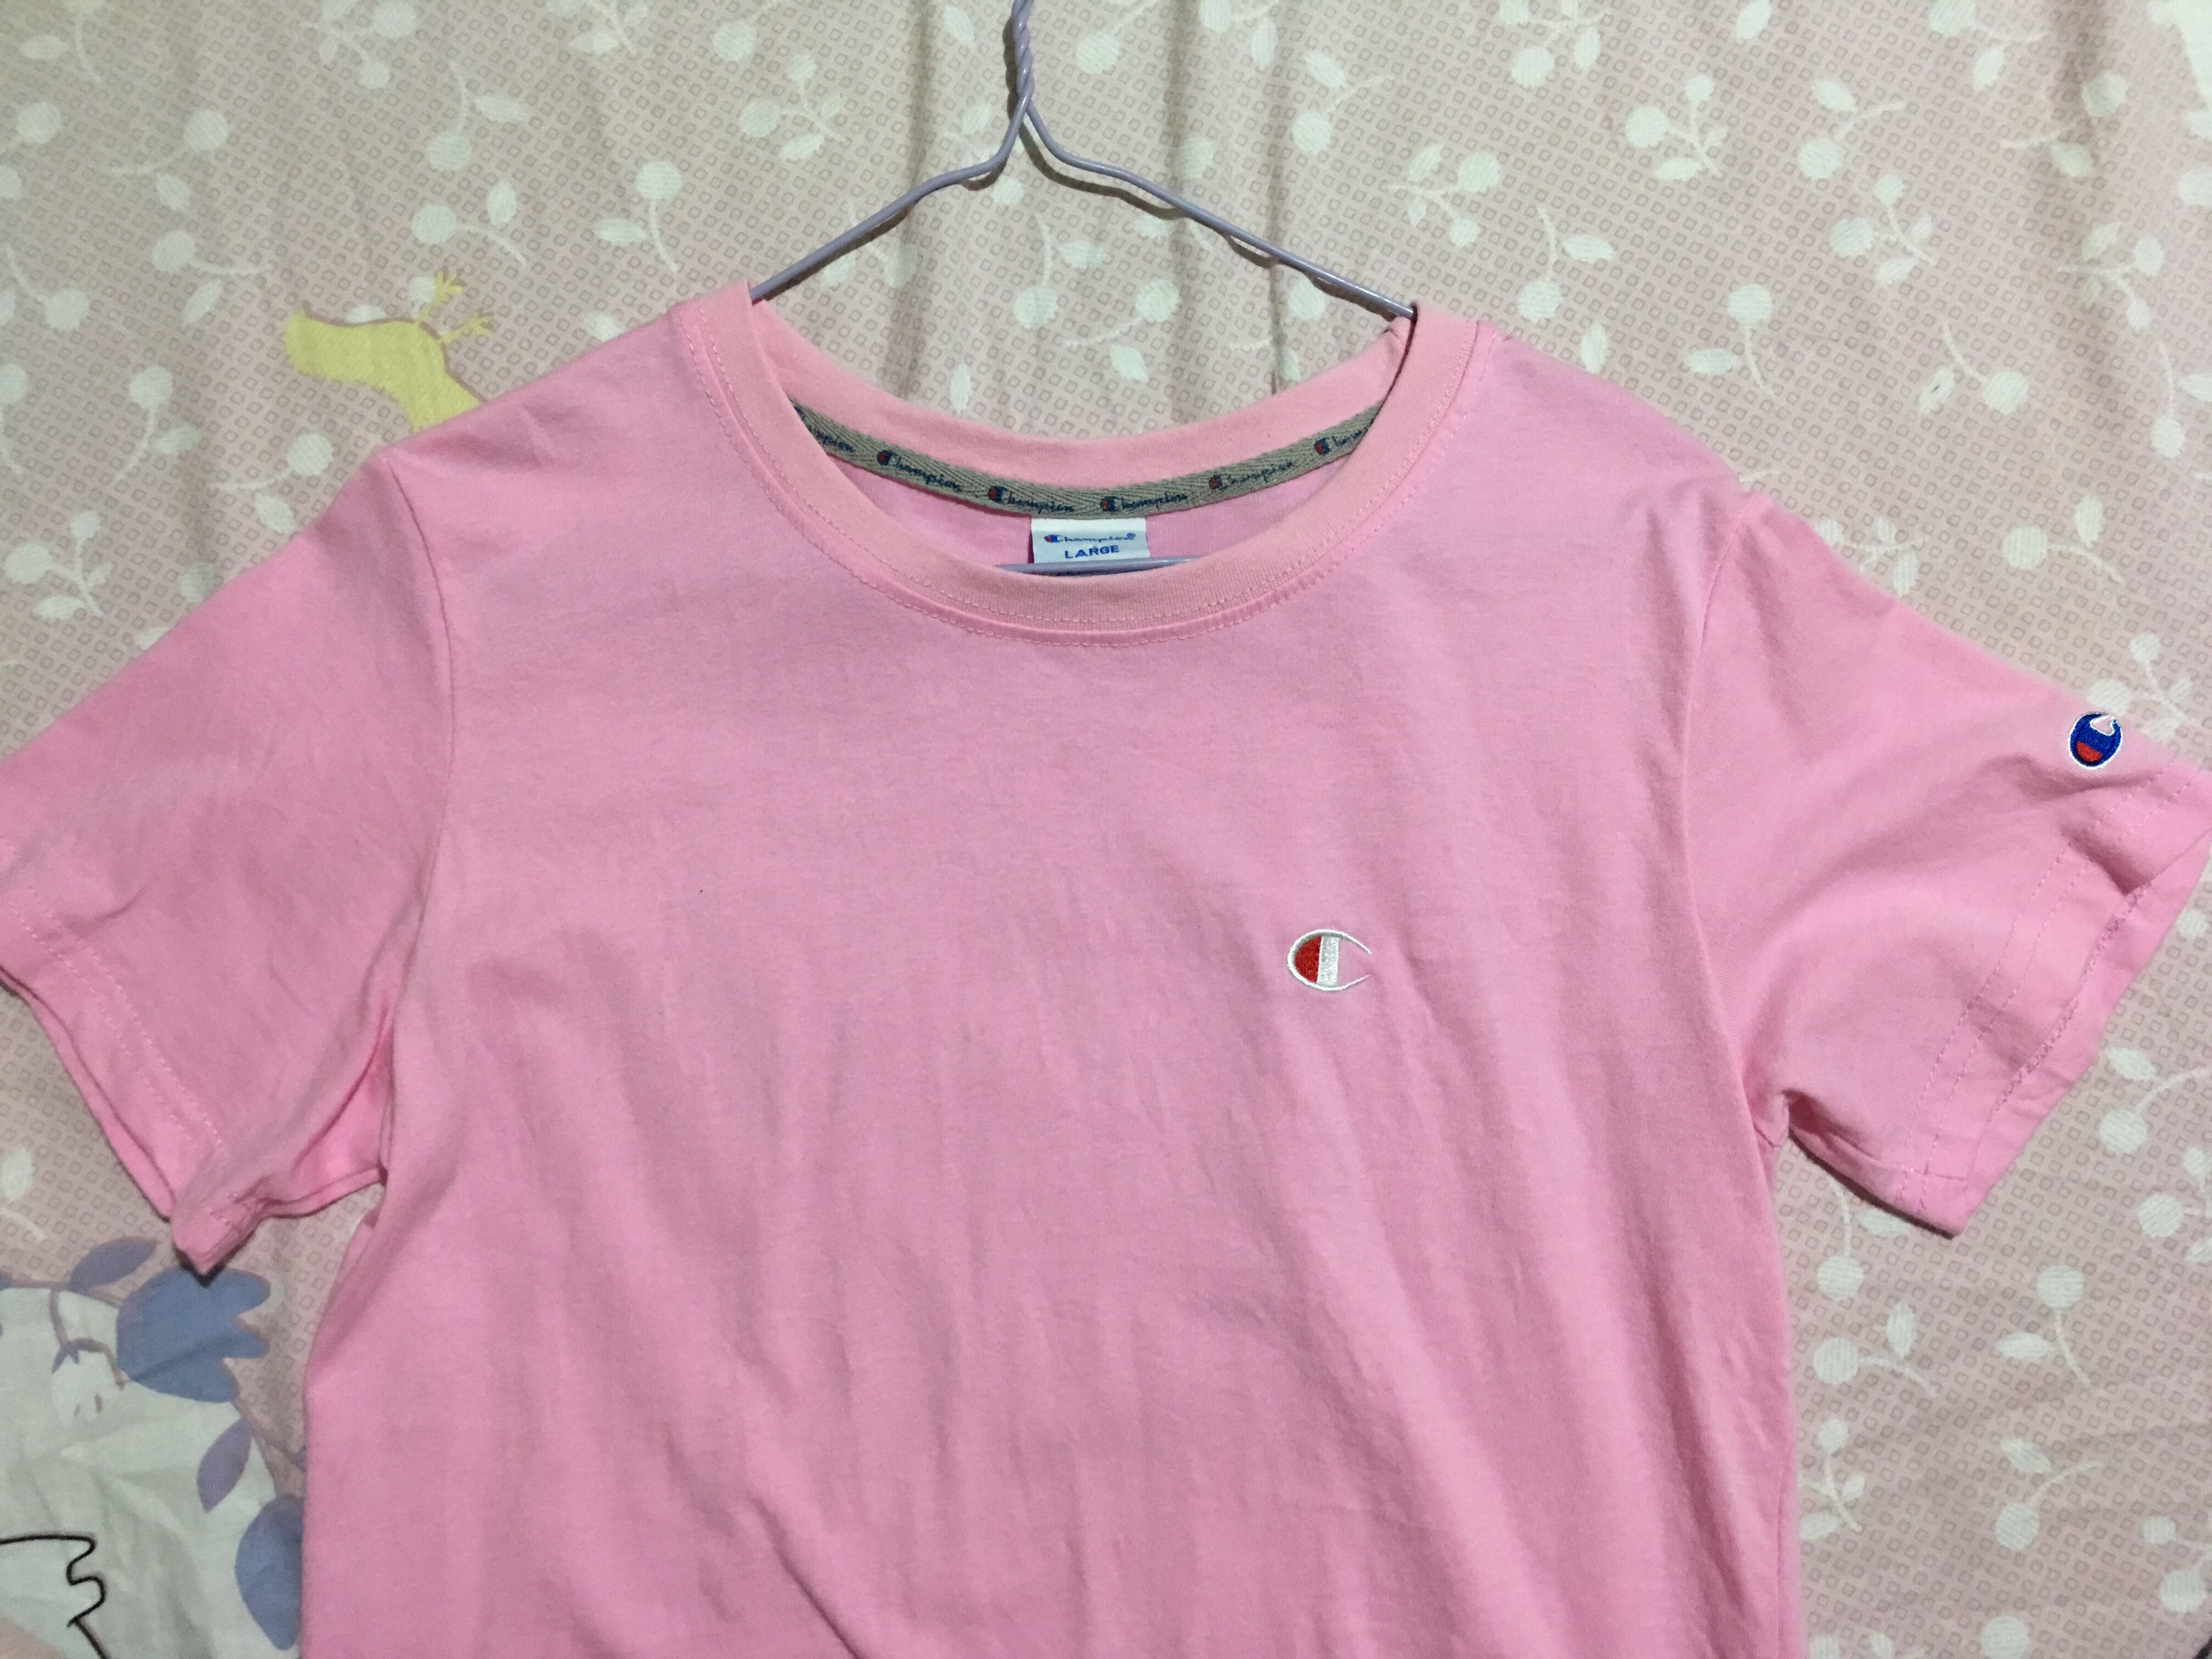 a5f1a119e0ae Champion Pink Shirt, Women's Fashion, Clothes, Tops on Carousell